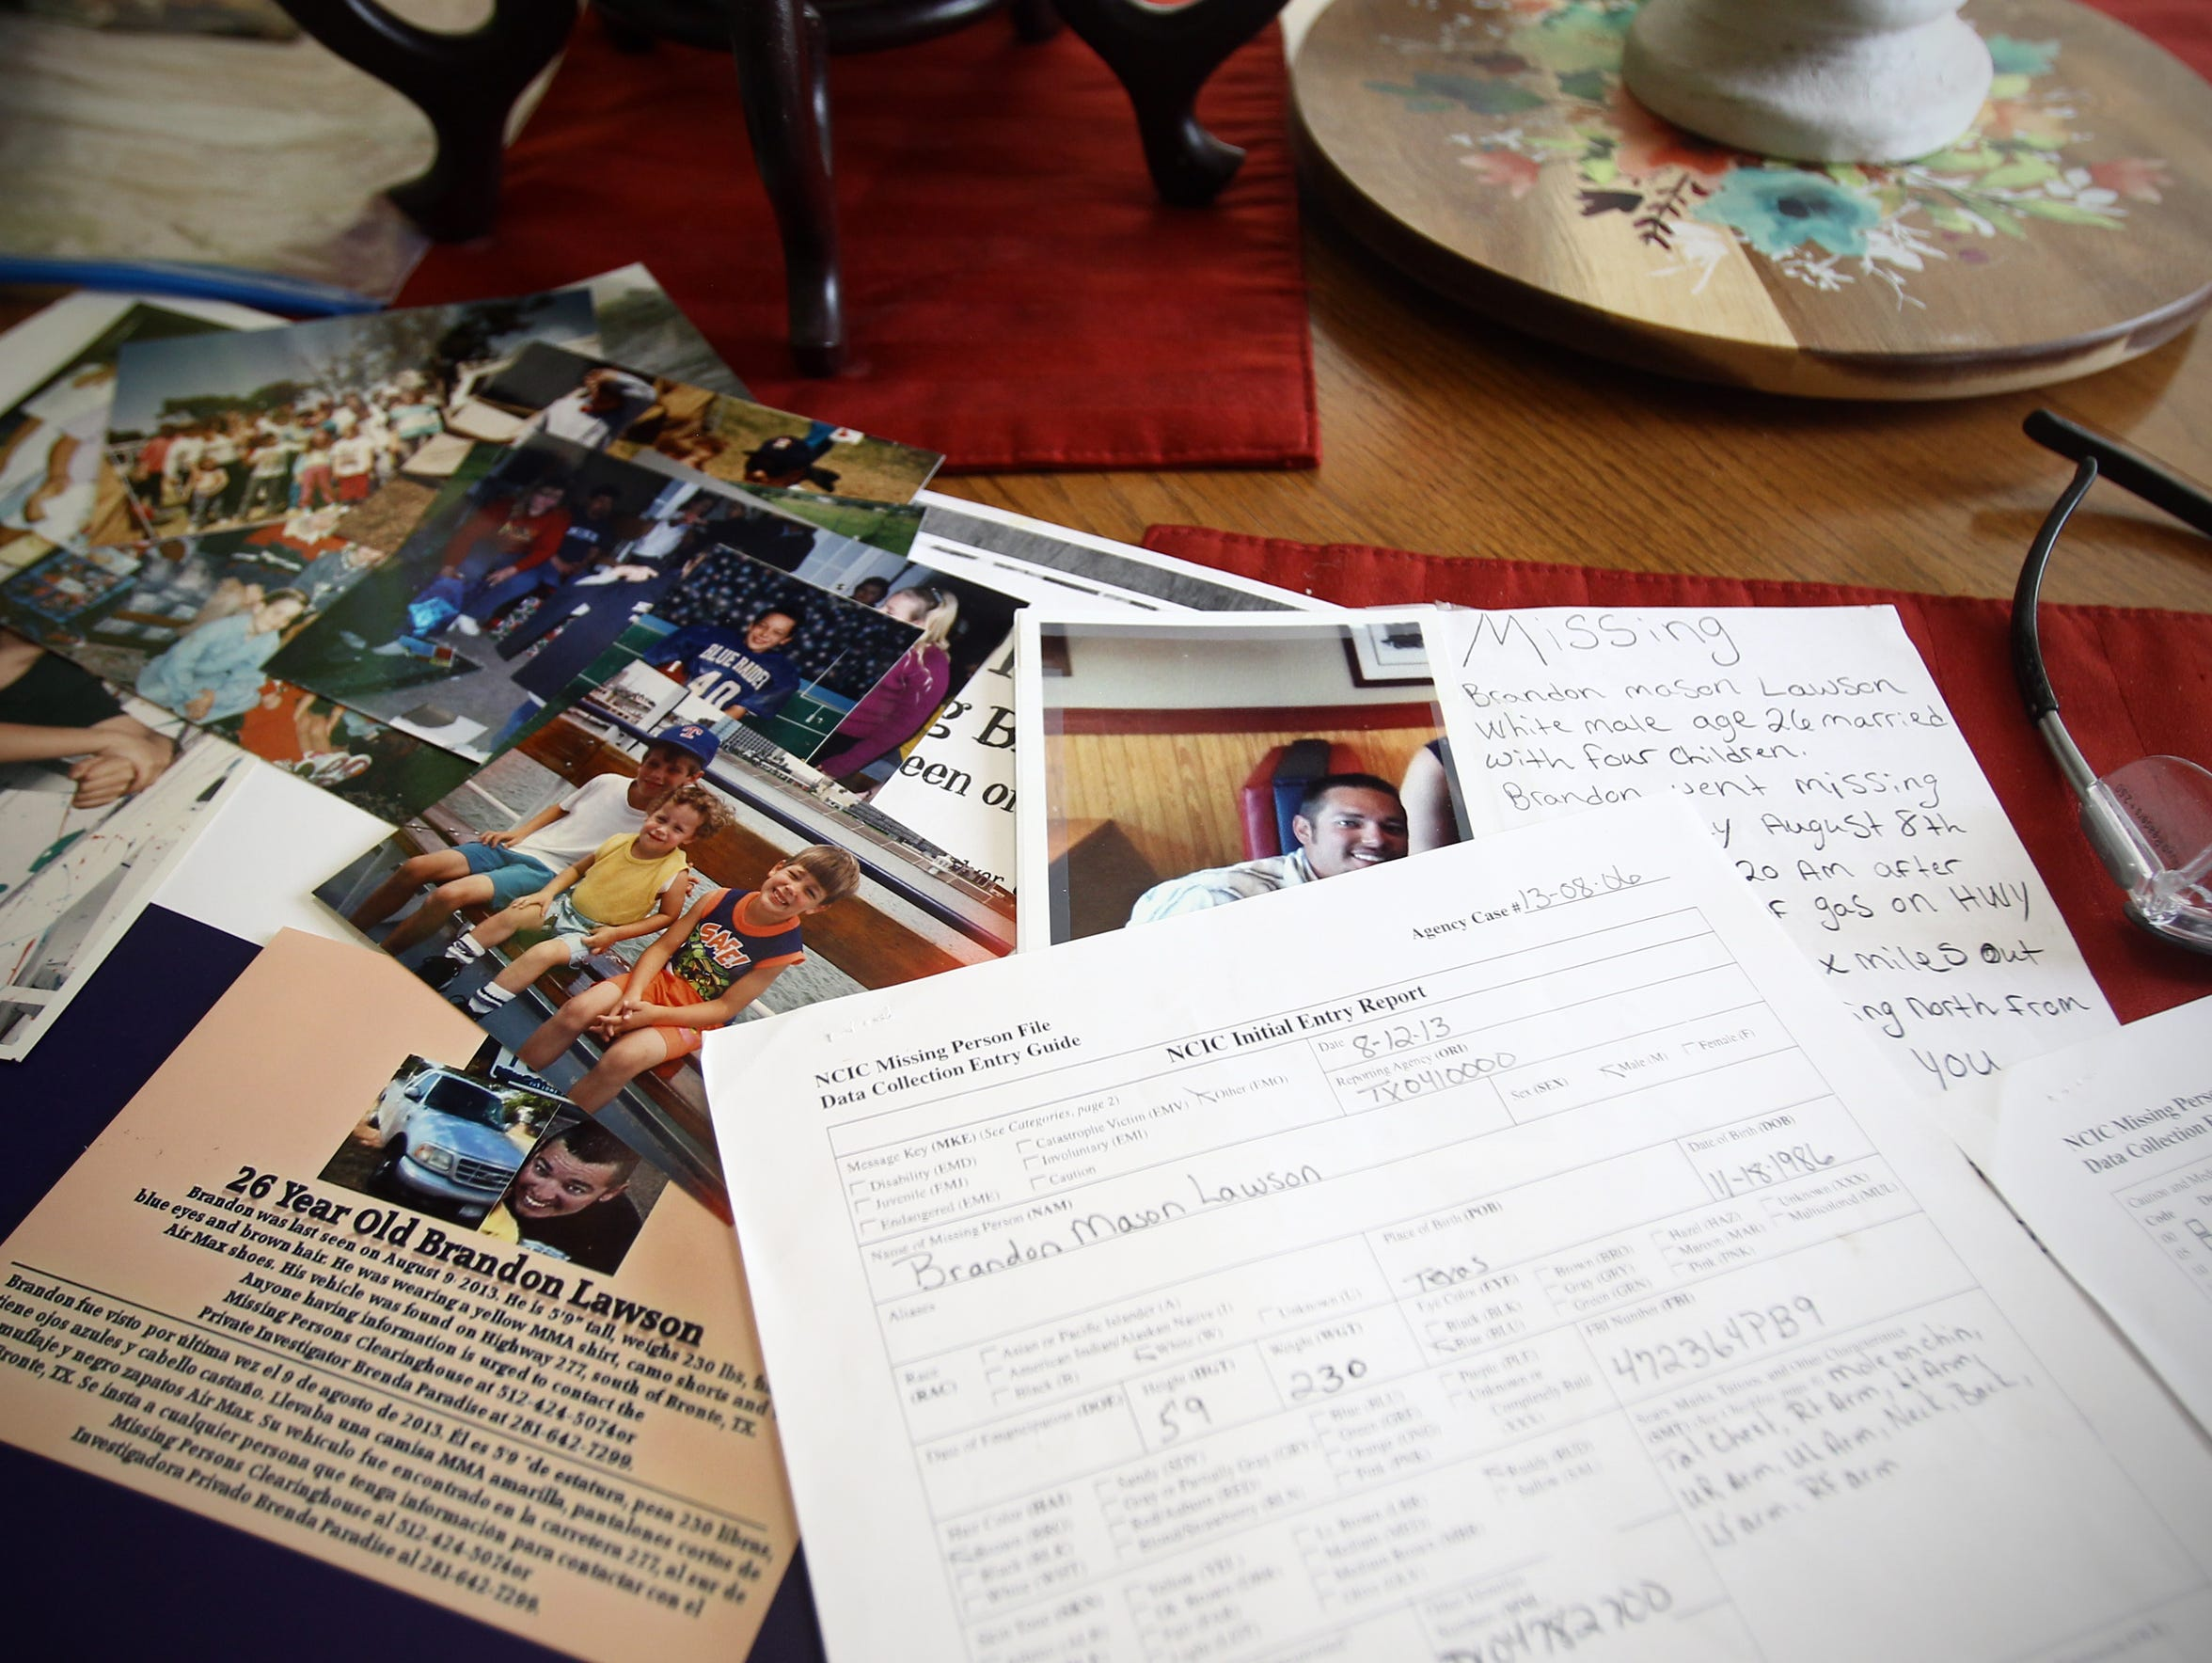 Pictures and a missing persons report line the kitchen